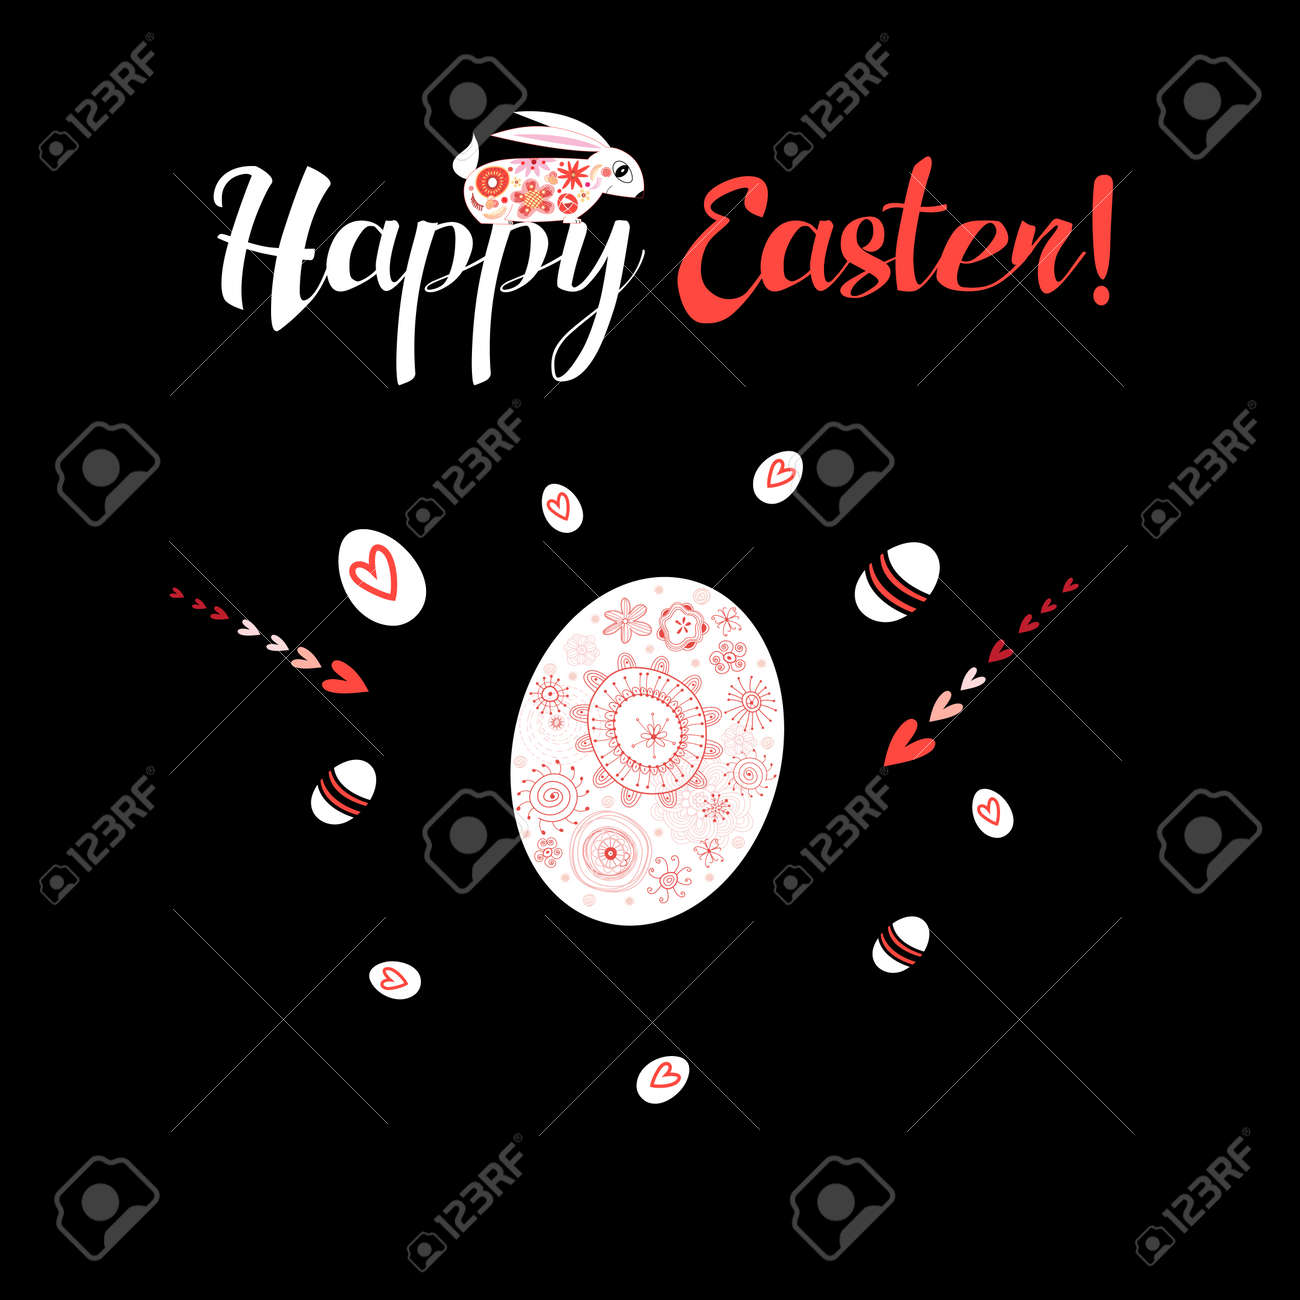 Greeting card with an Easter egg and hares - 164981344